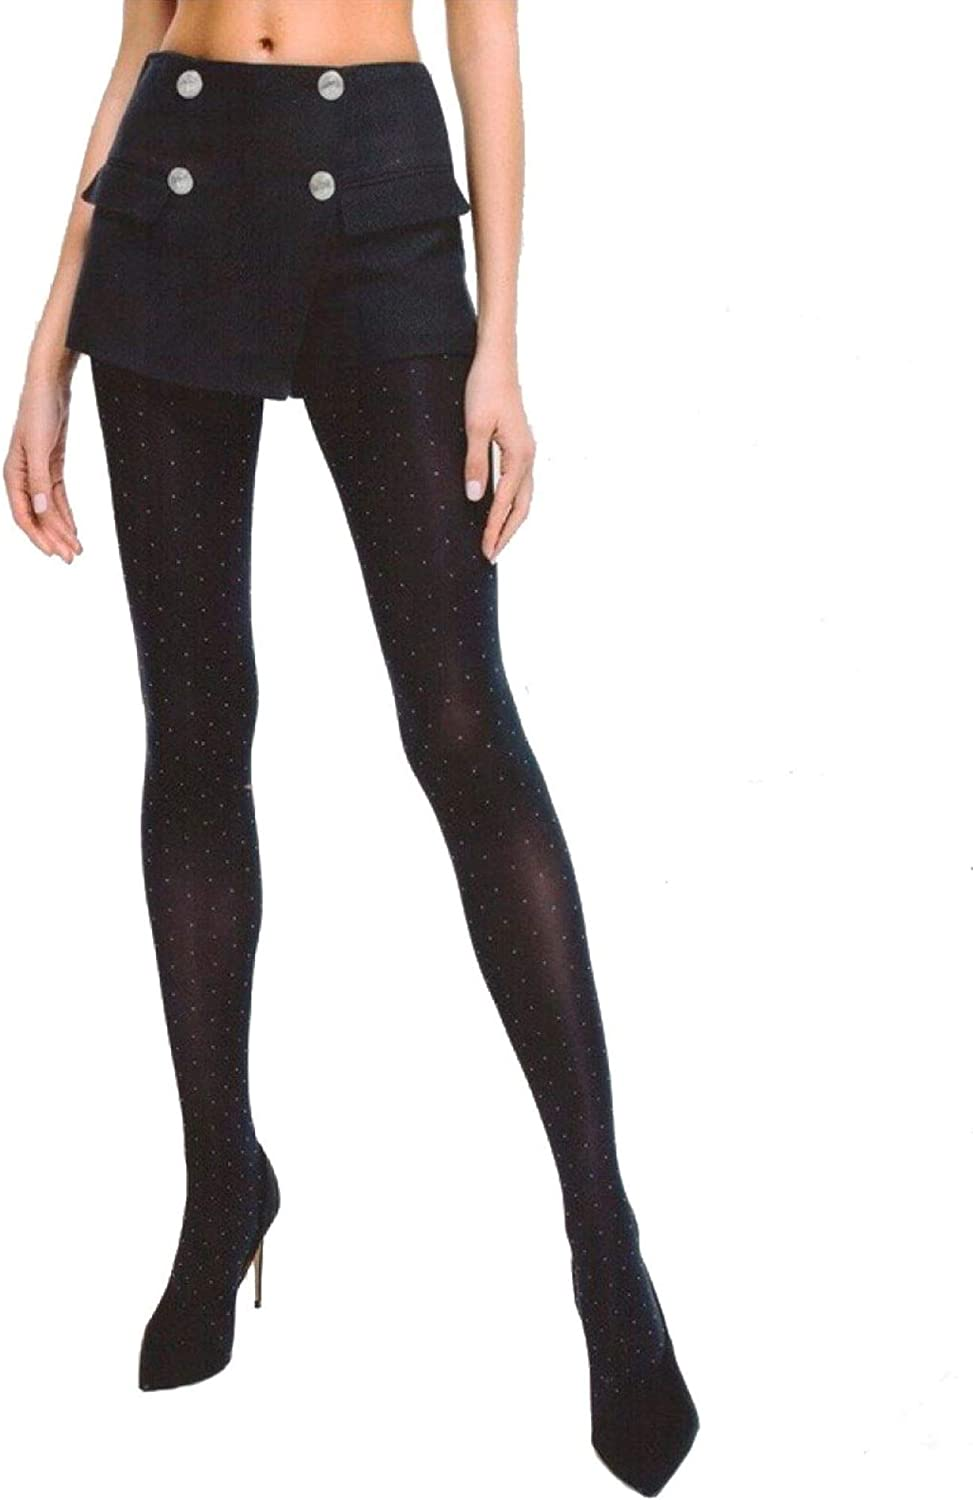 Conte Tights with Polka Dot Pattern Opaque Pantyhose Point 50 Den, Black (Nero), Large